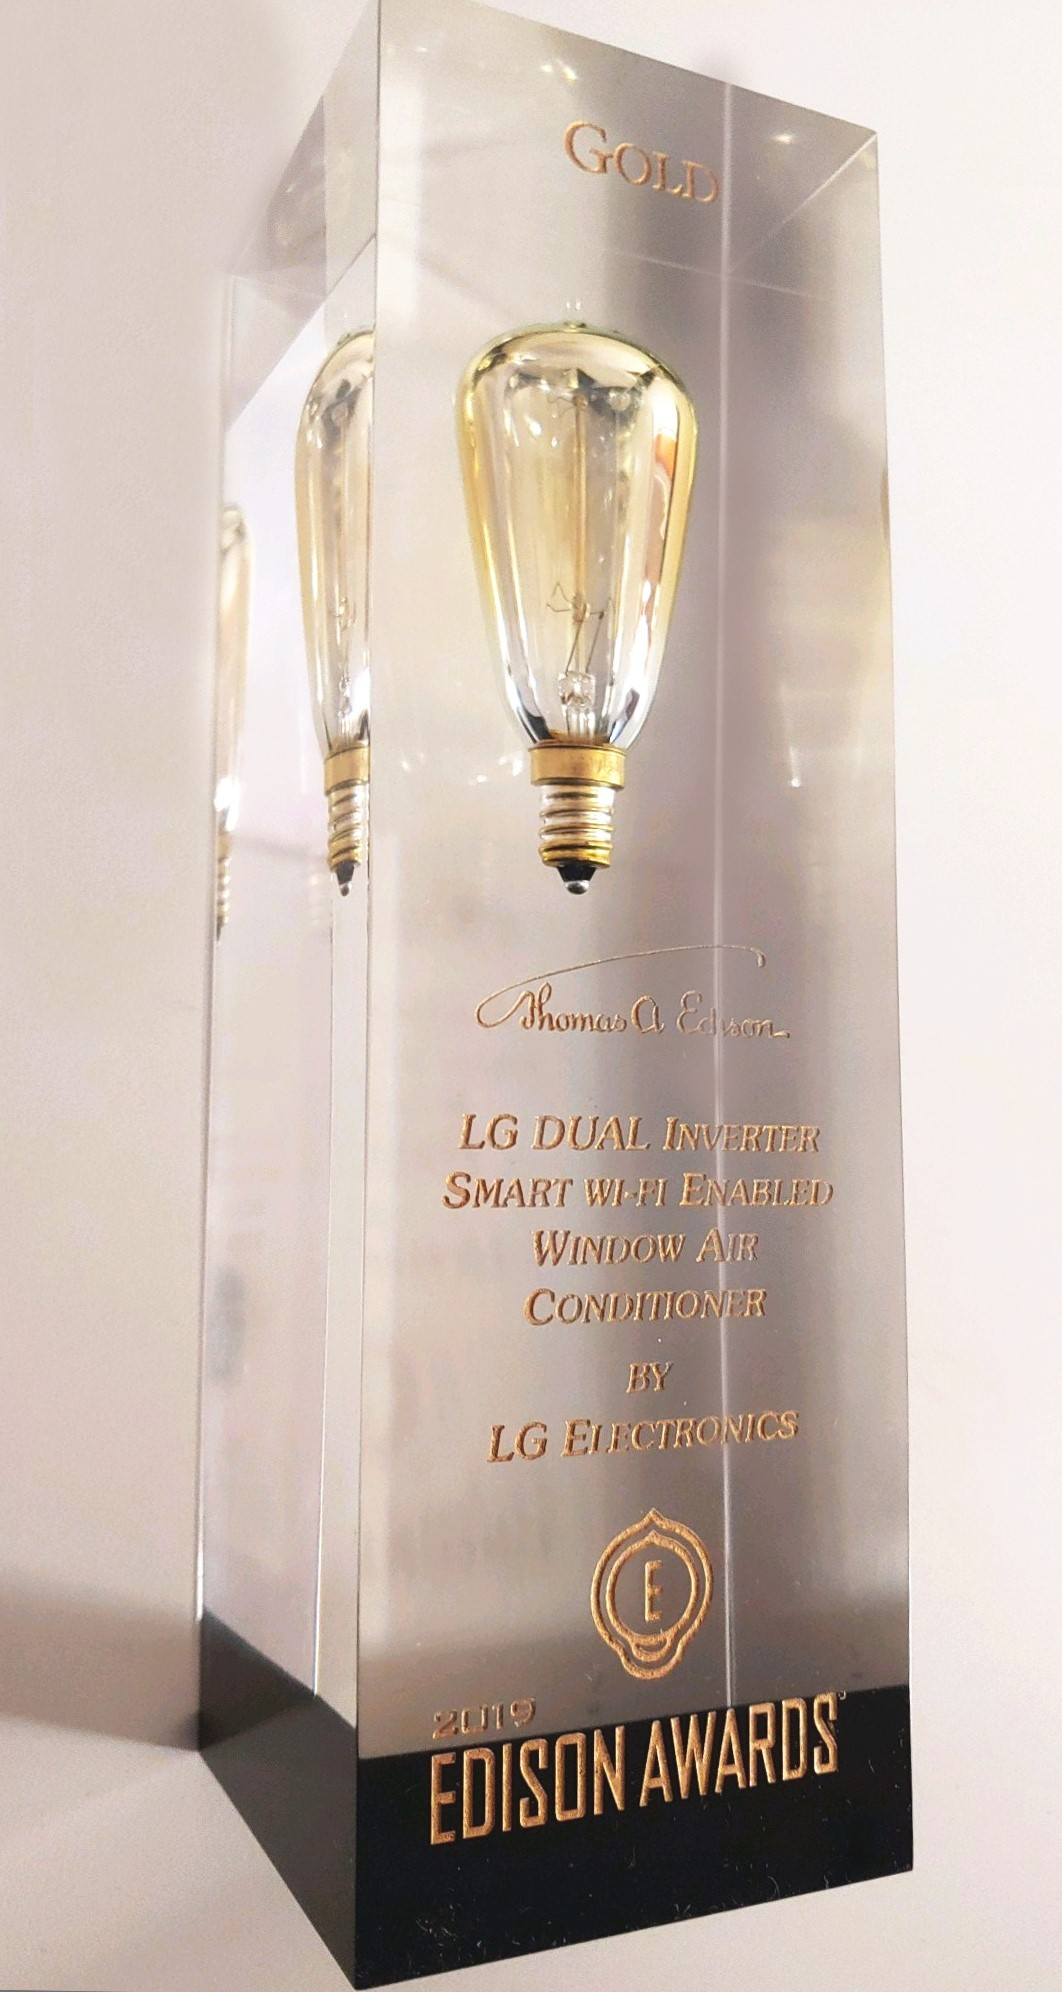 The trophy of the 2019 Gold Edison Award which is engraved with the product name of LG DUAL Inverter Smart Wi-Fi-enabled Window Air Conditioner